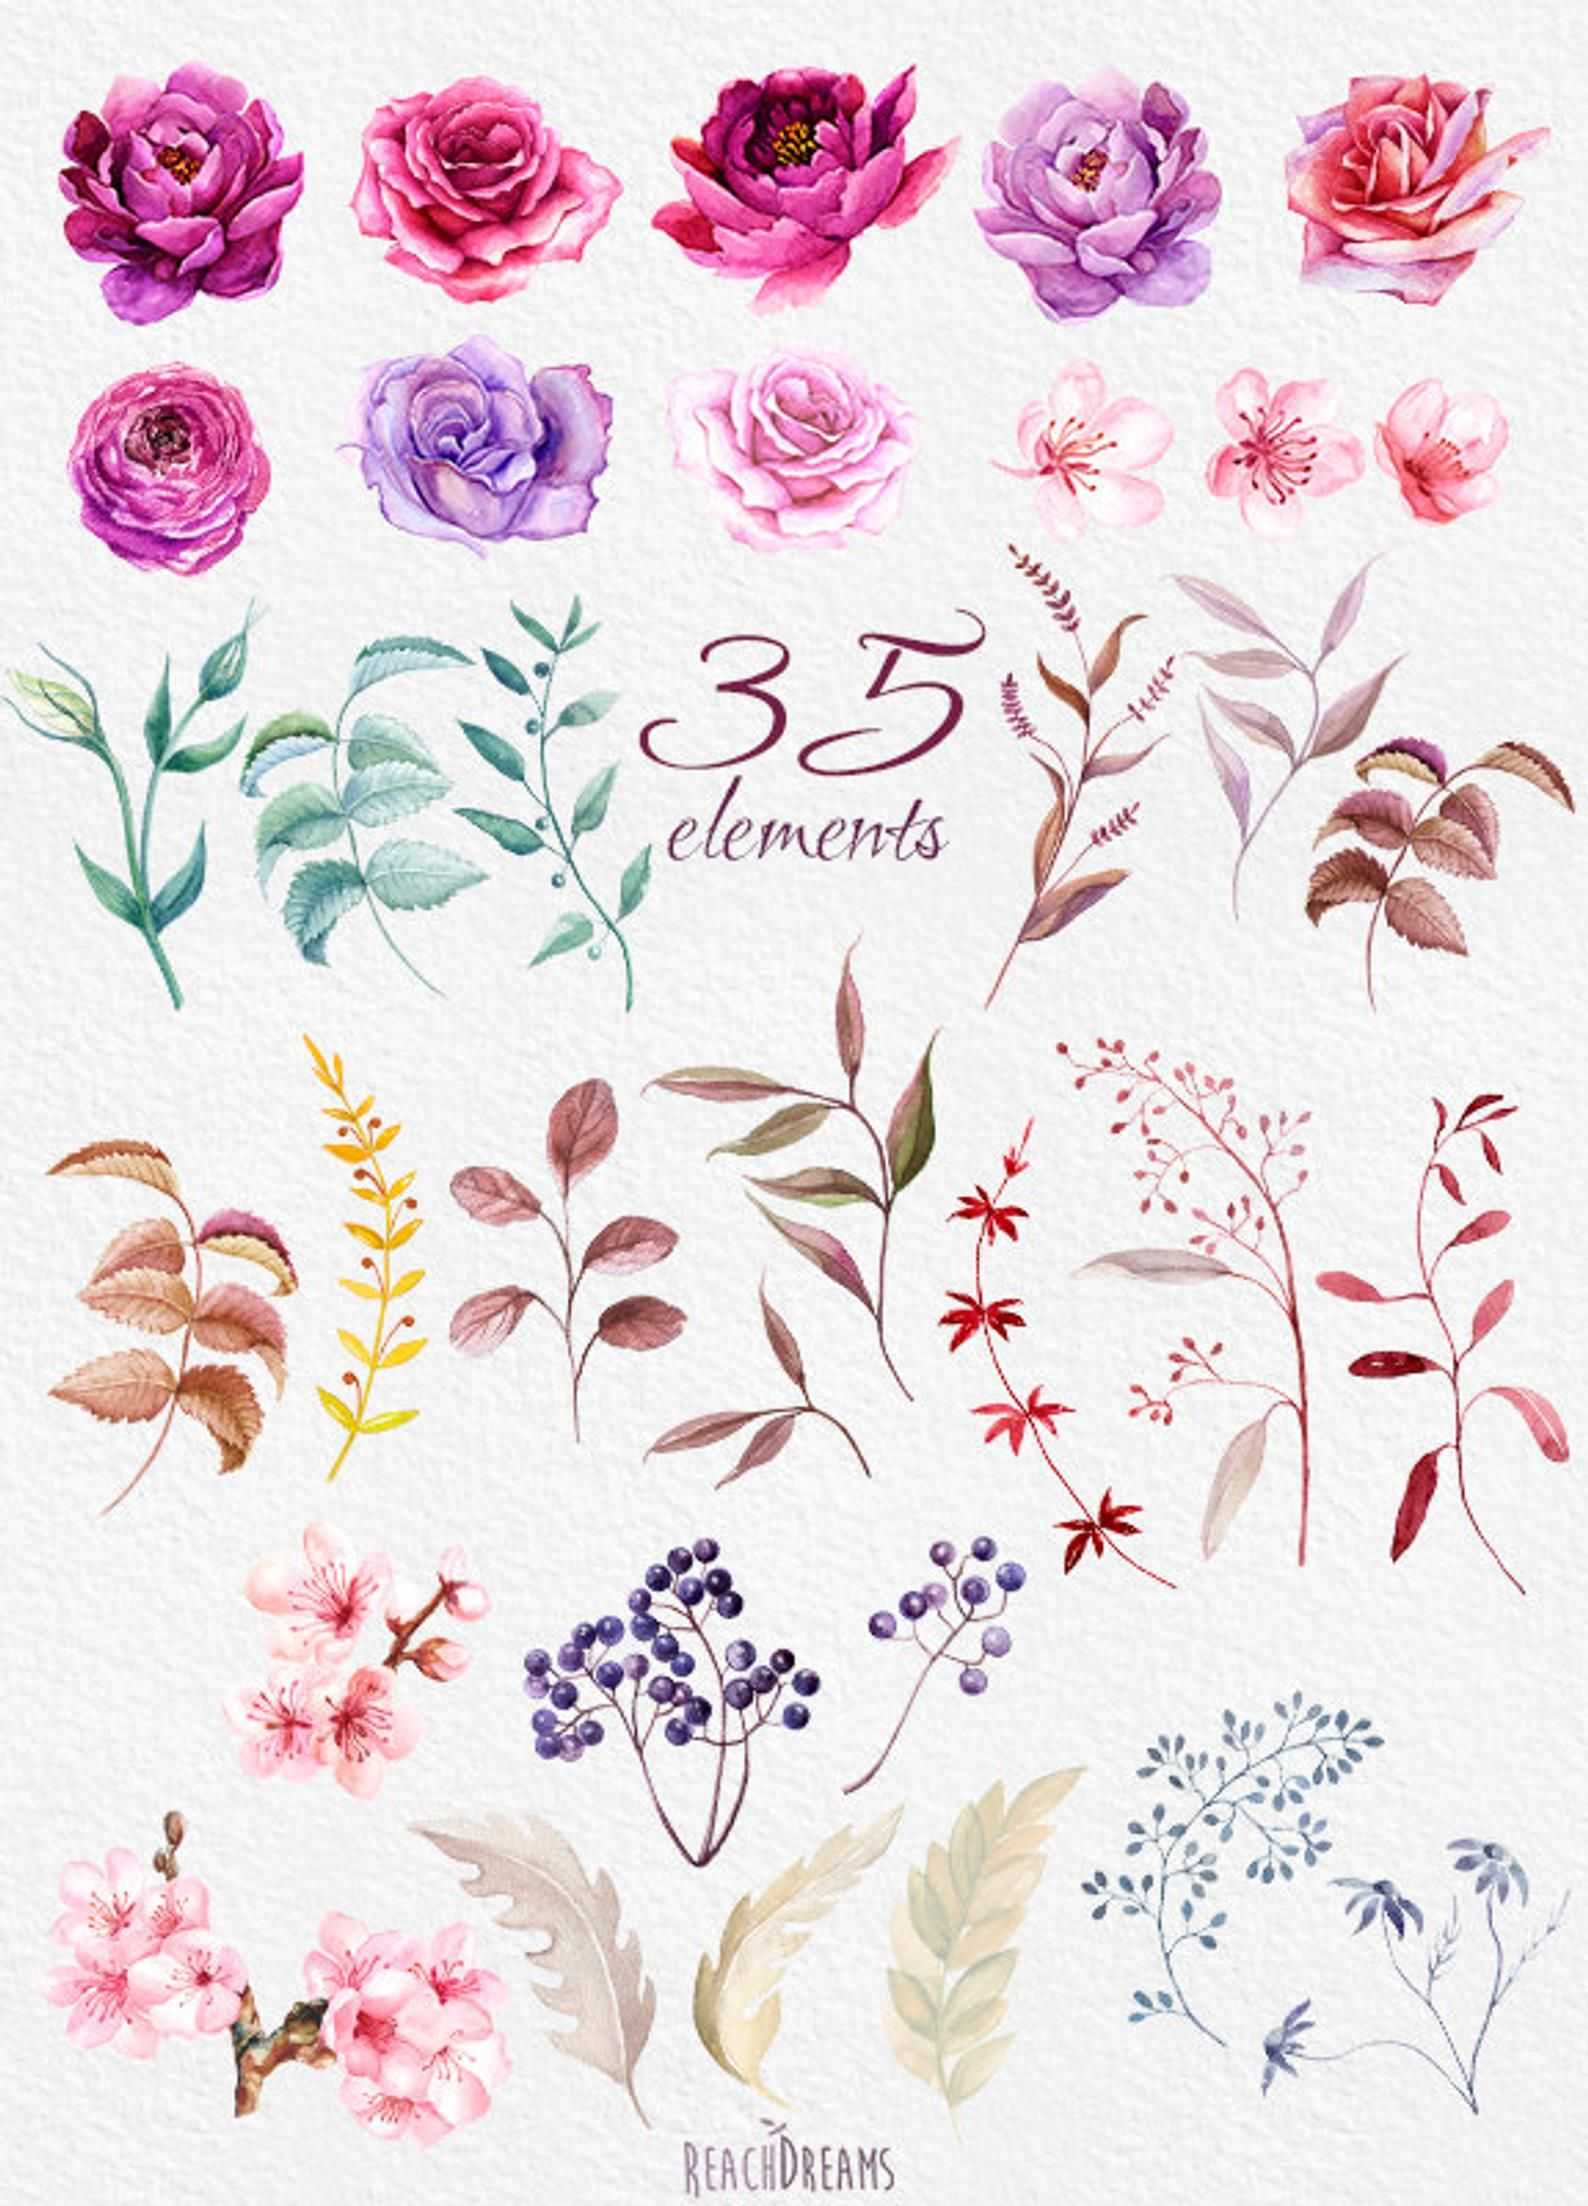 Watercolor Burgundy Floral Elements Peonies And Roses Boho Style Wedding Invitations Clipart Purple Flowers Individual Png Files Blumentattoos Körperkunst Tattoos Pfingstrosen